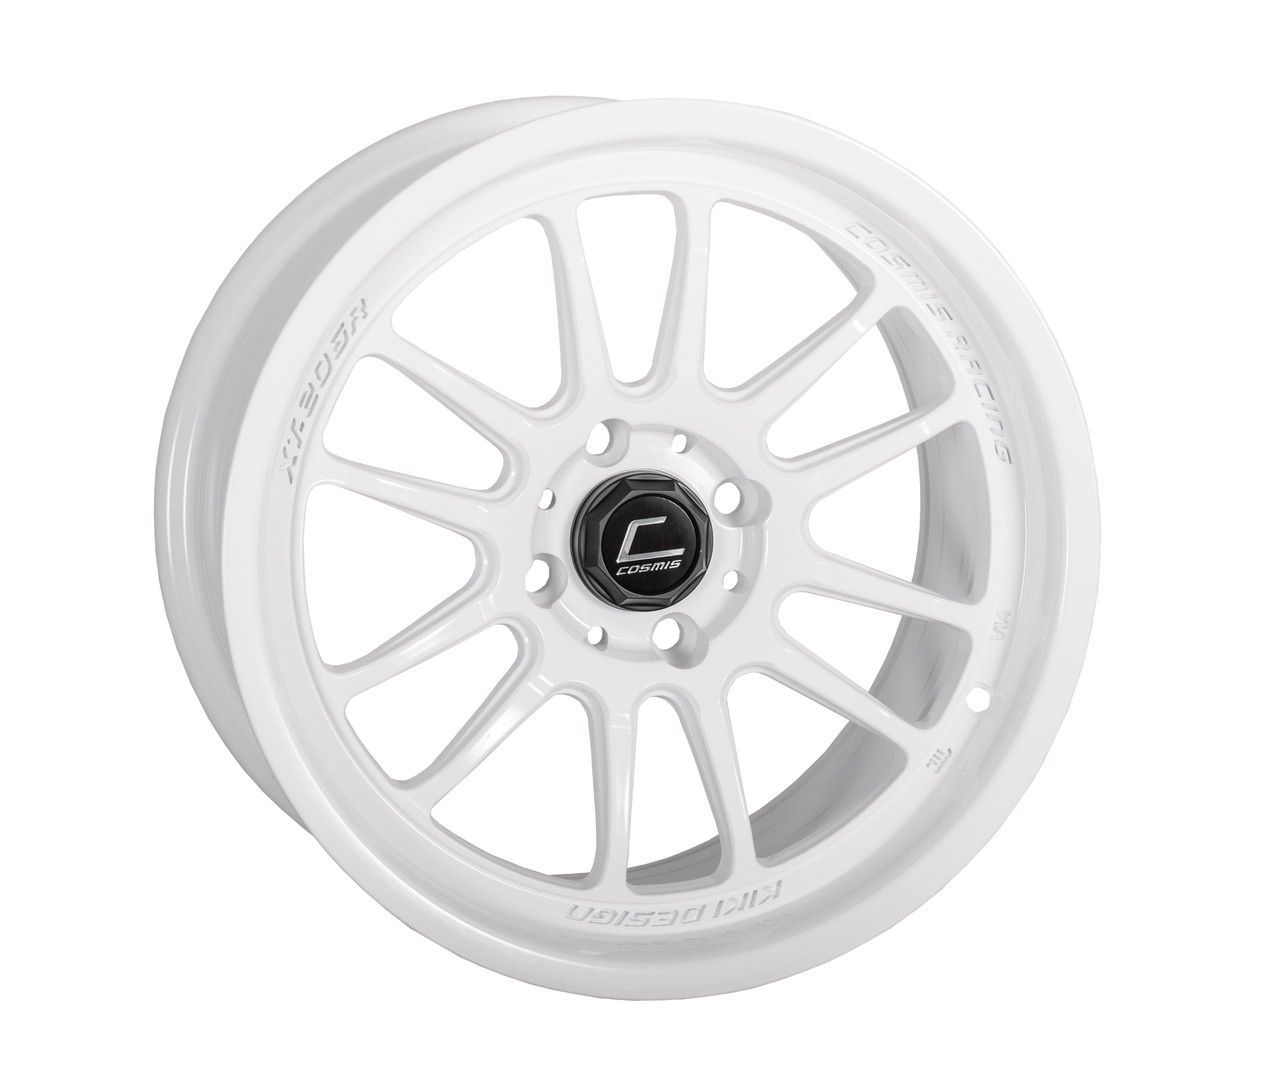 "Cosmis Racing XT-206R Wheel in 15x8"" - White"